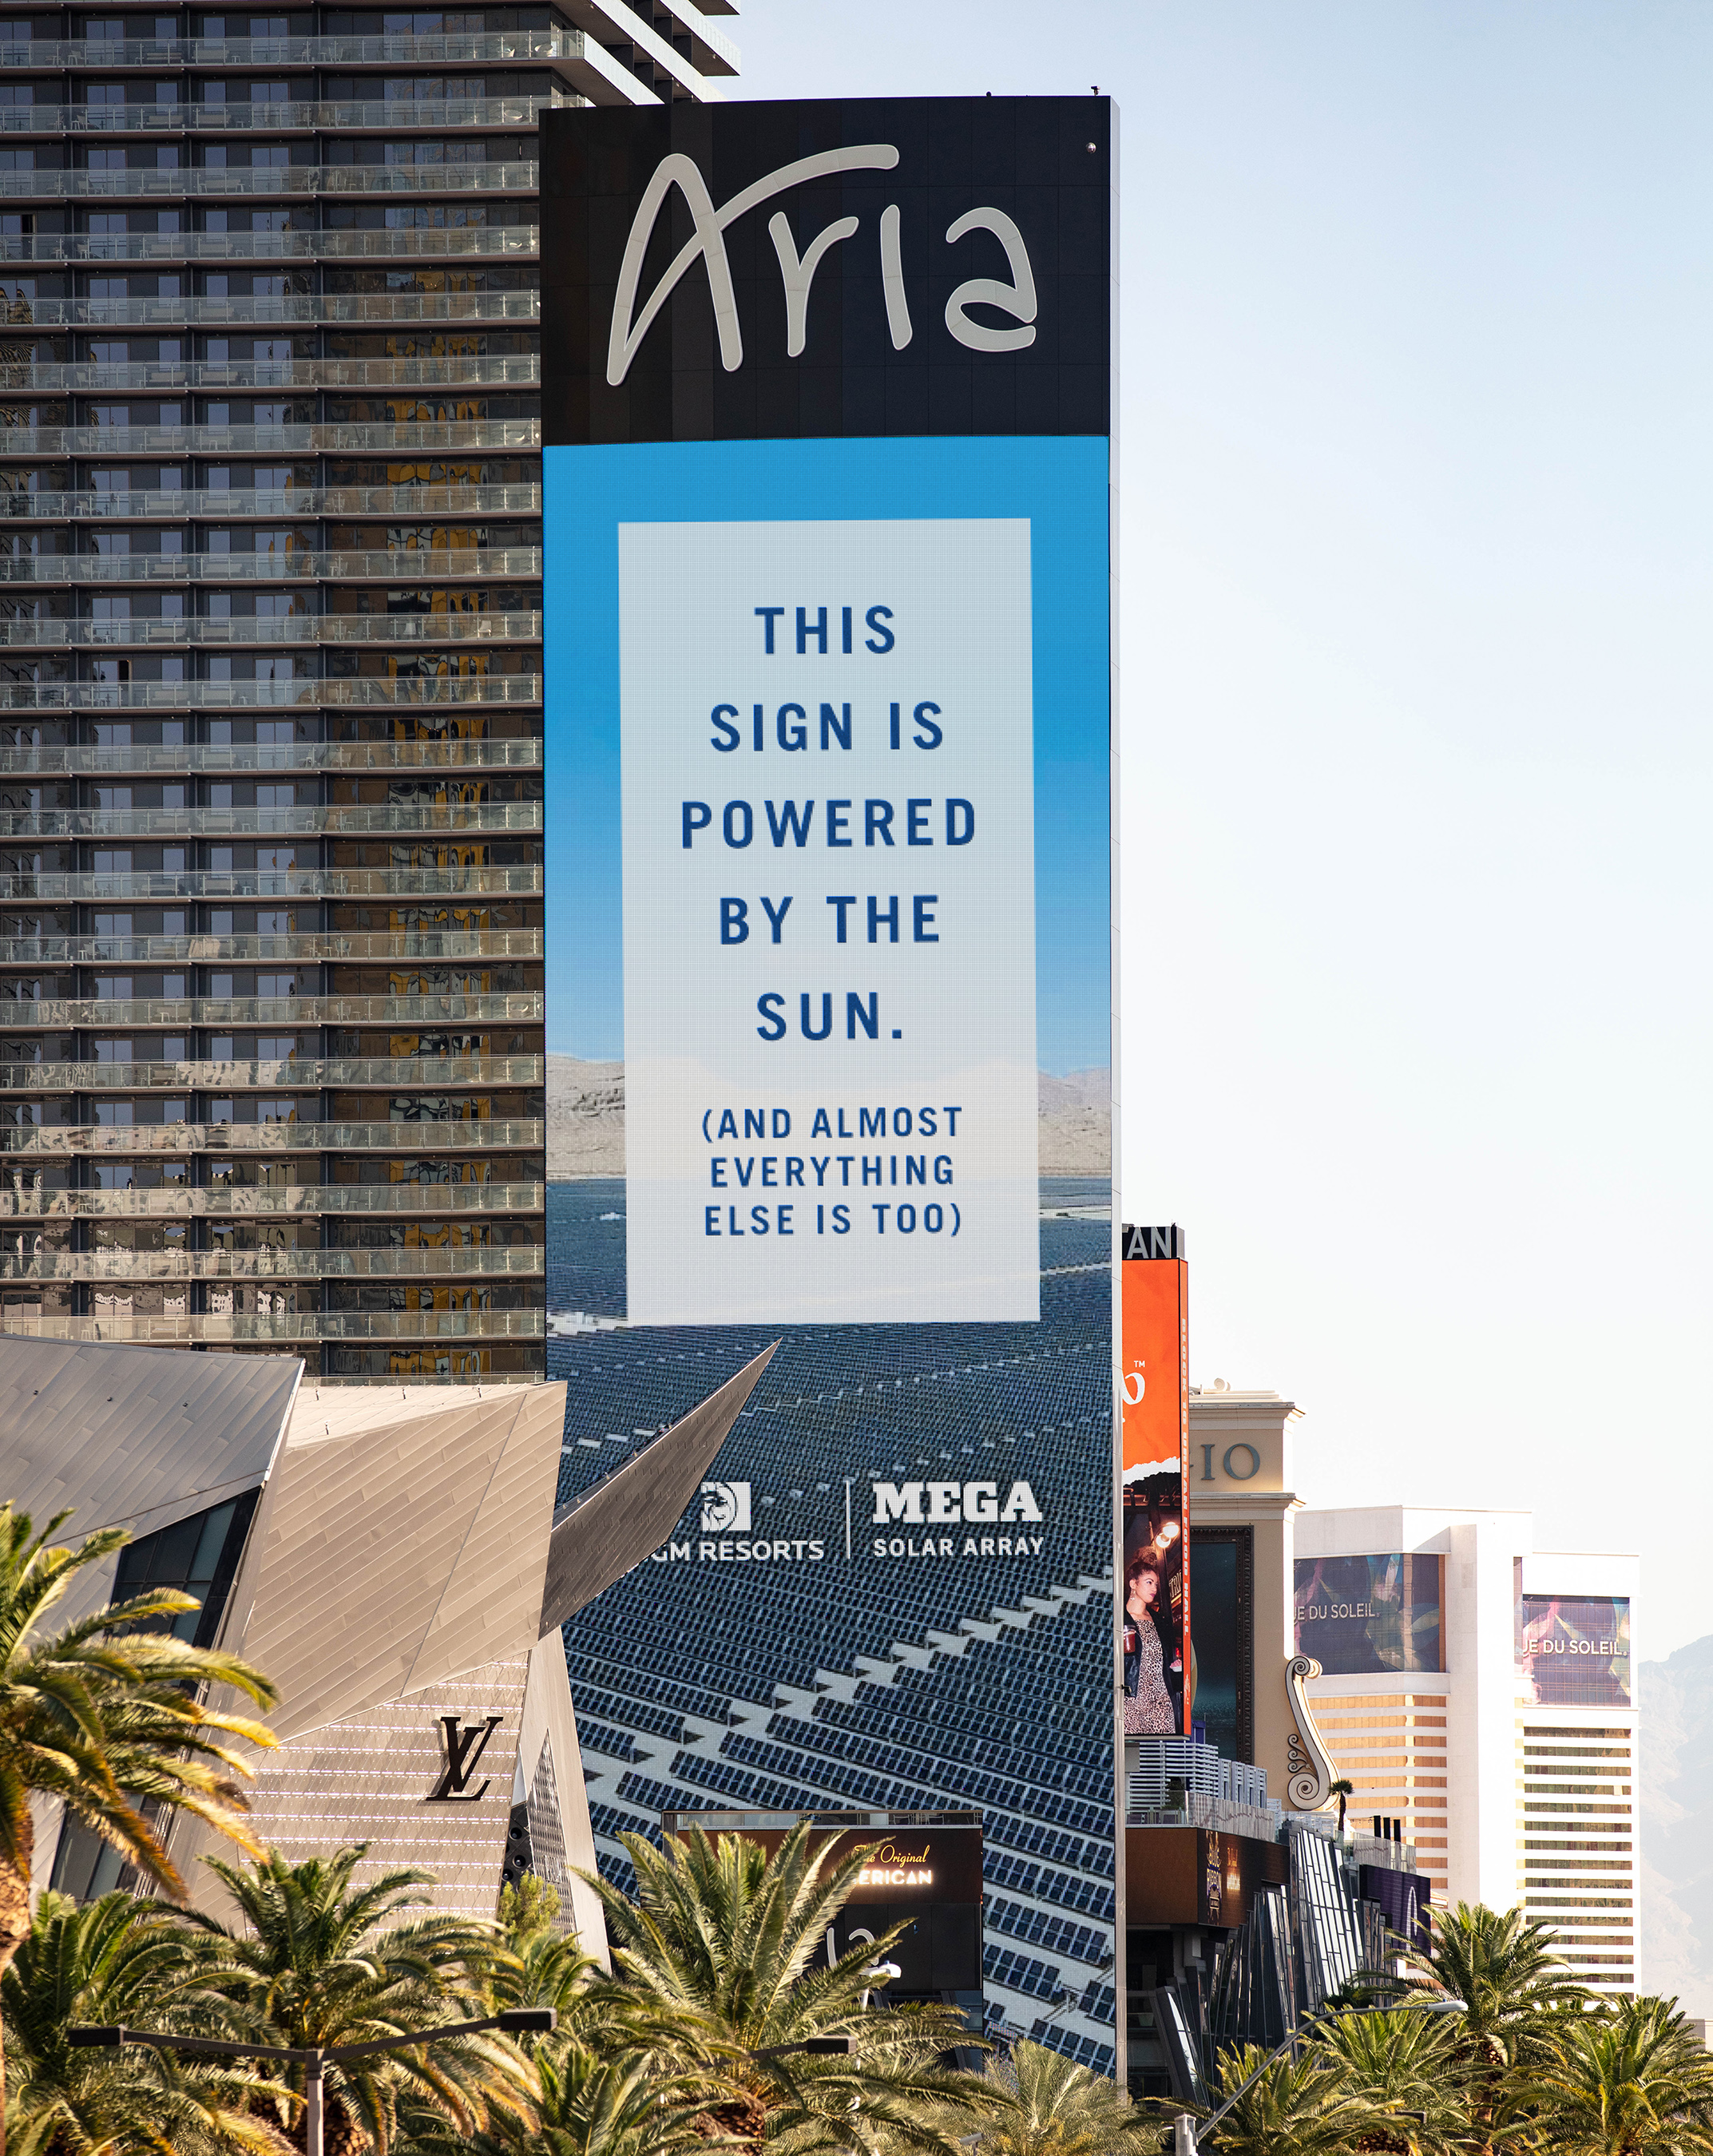 Powered by the Sun: The solar array's clean energy now produces up to 90% of MGM Resorts' Las Vegas daytime power needs at its 13 Strip properties.